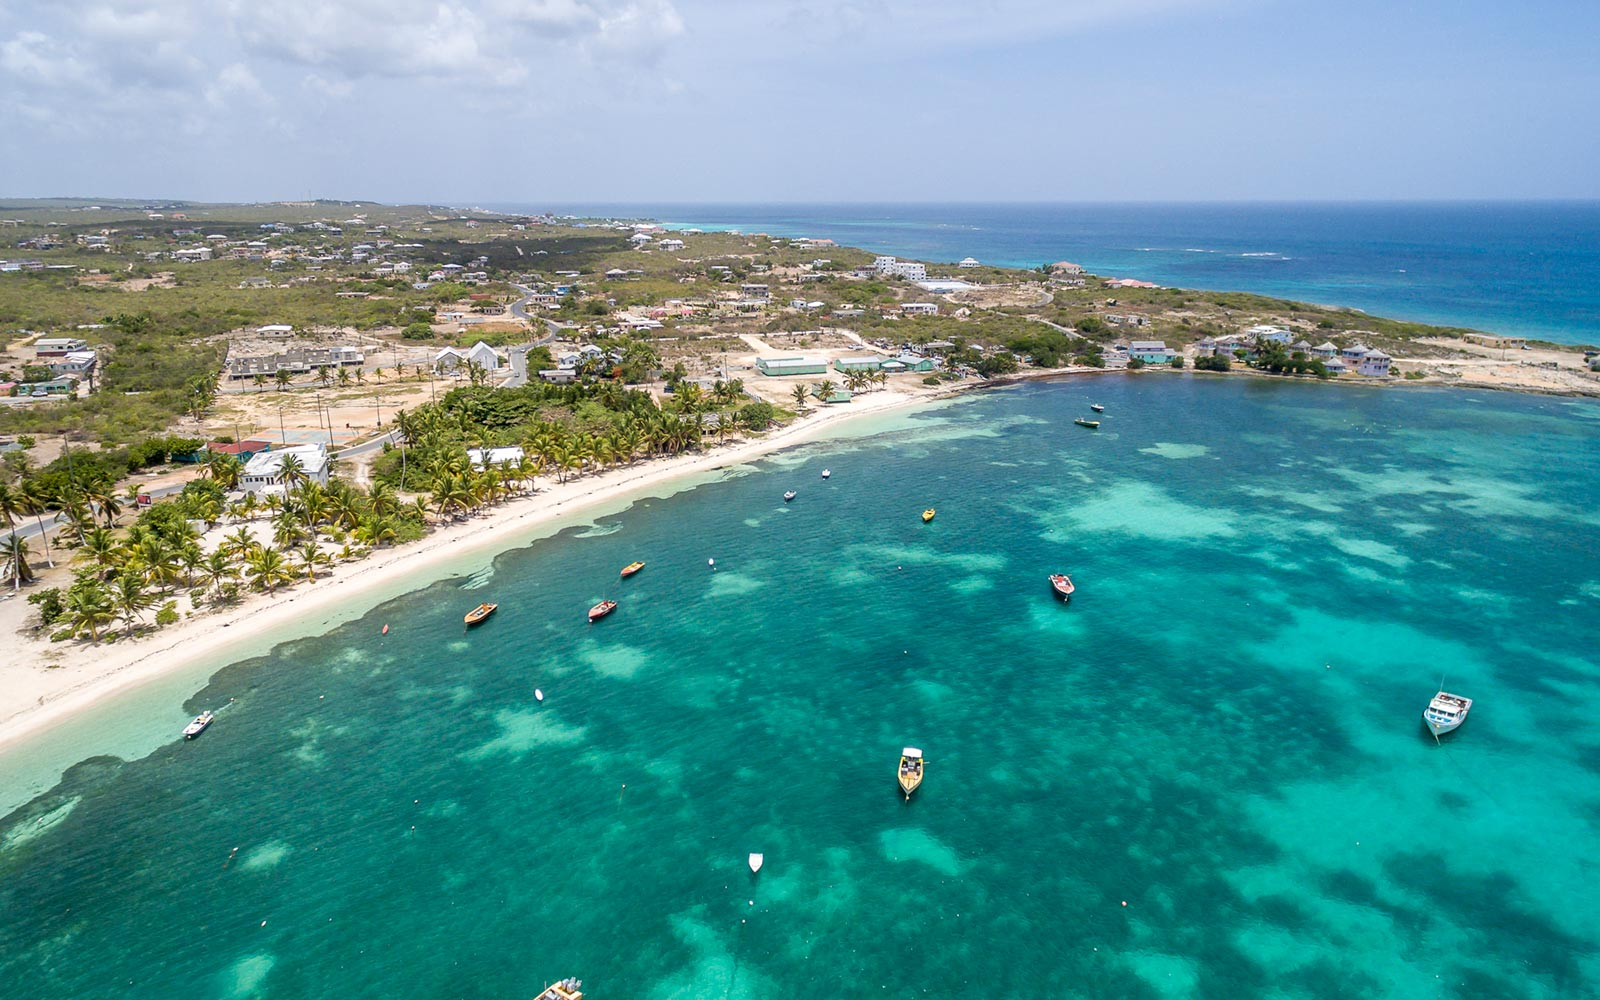 The 2018 World's Best Islands in the Caribbean, Bermuda, and the Bahamas